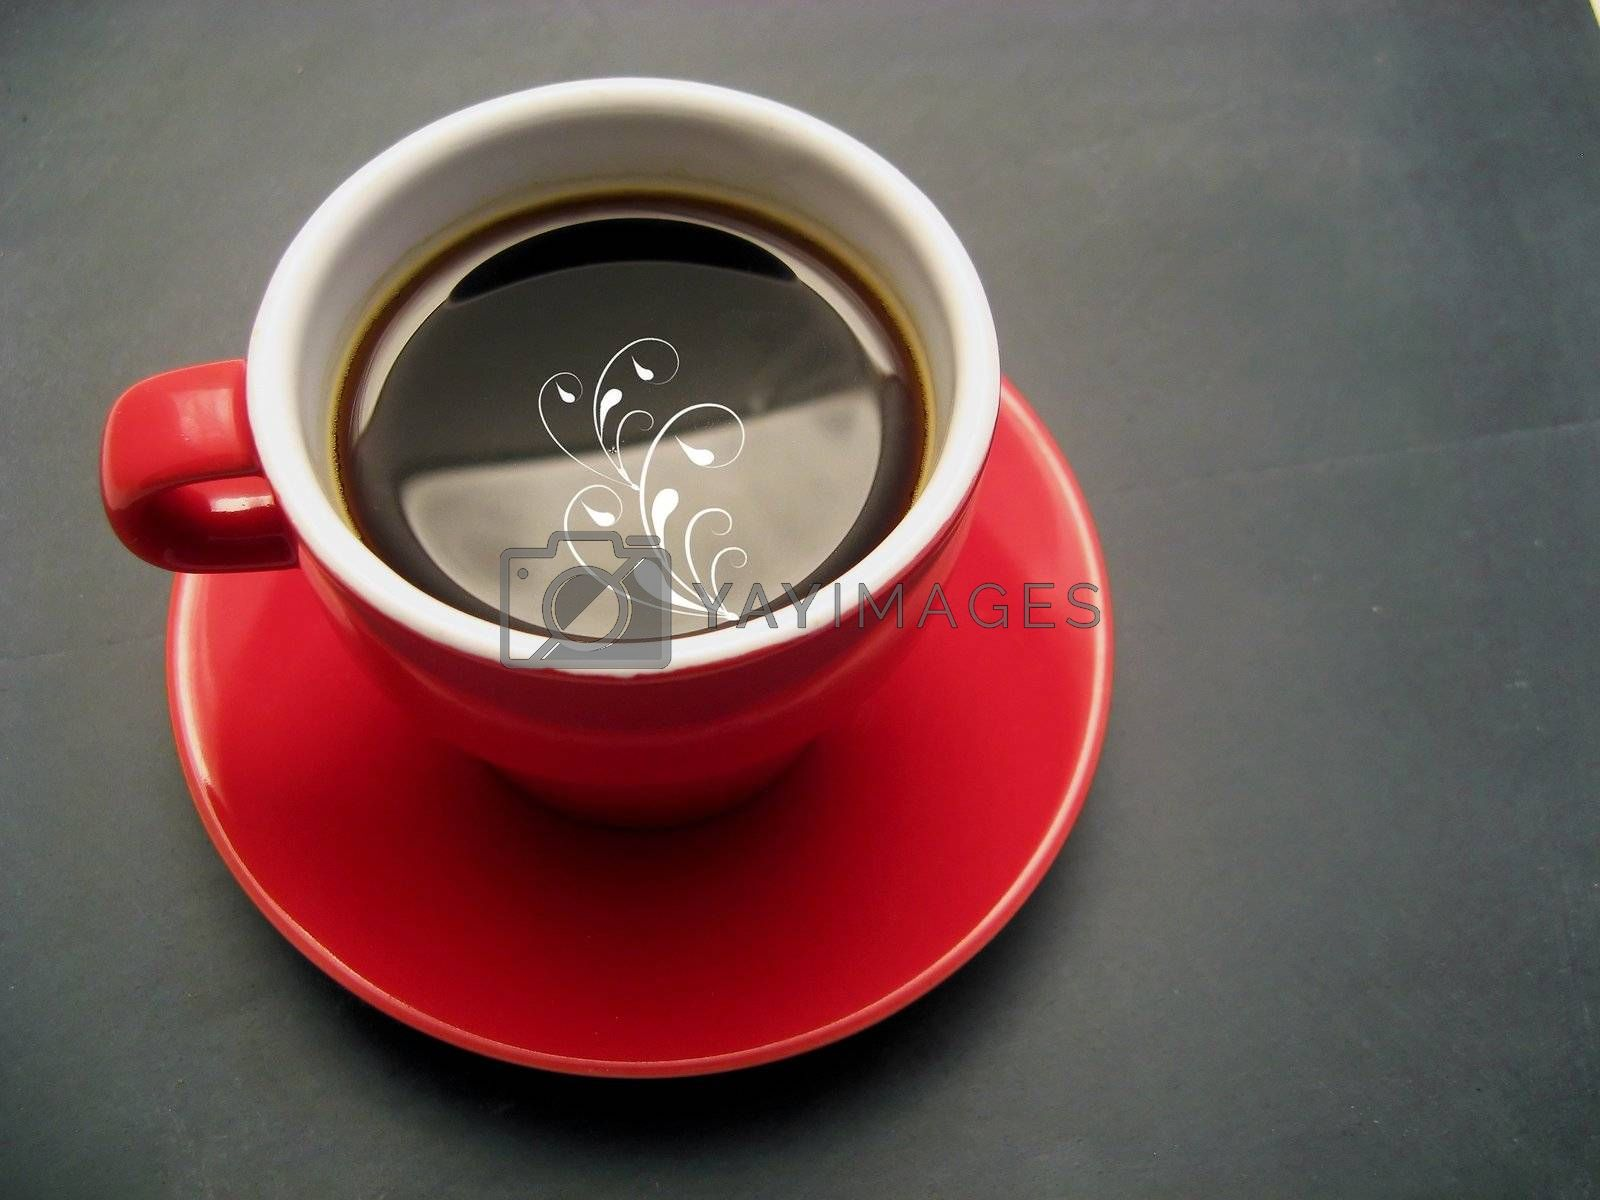 Red cup with black coffee